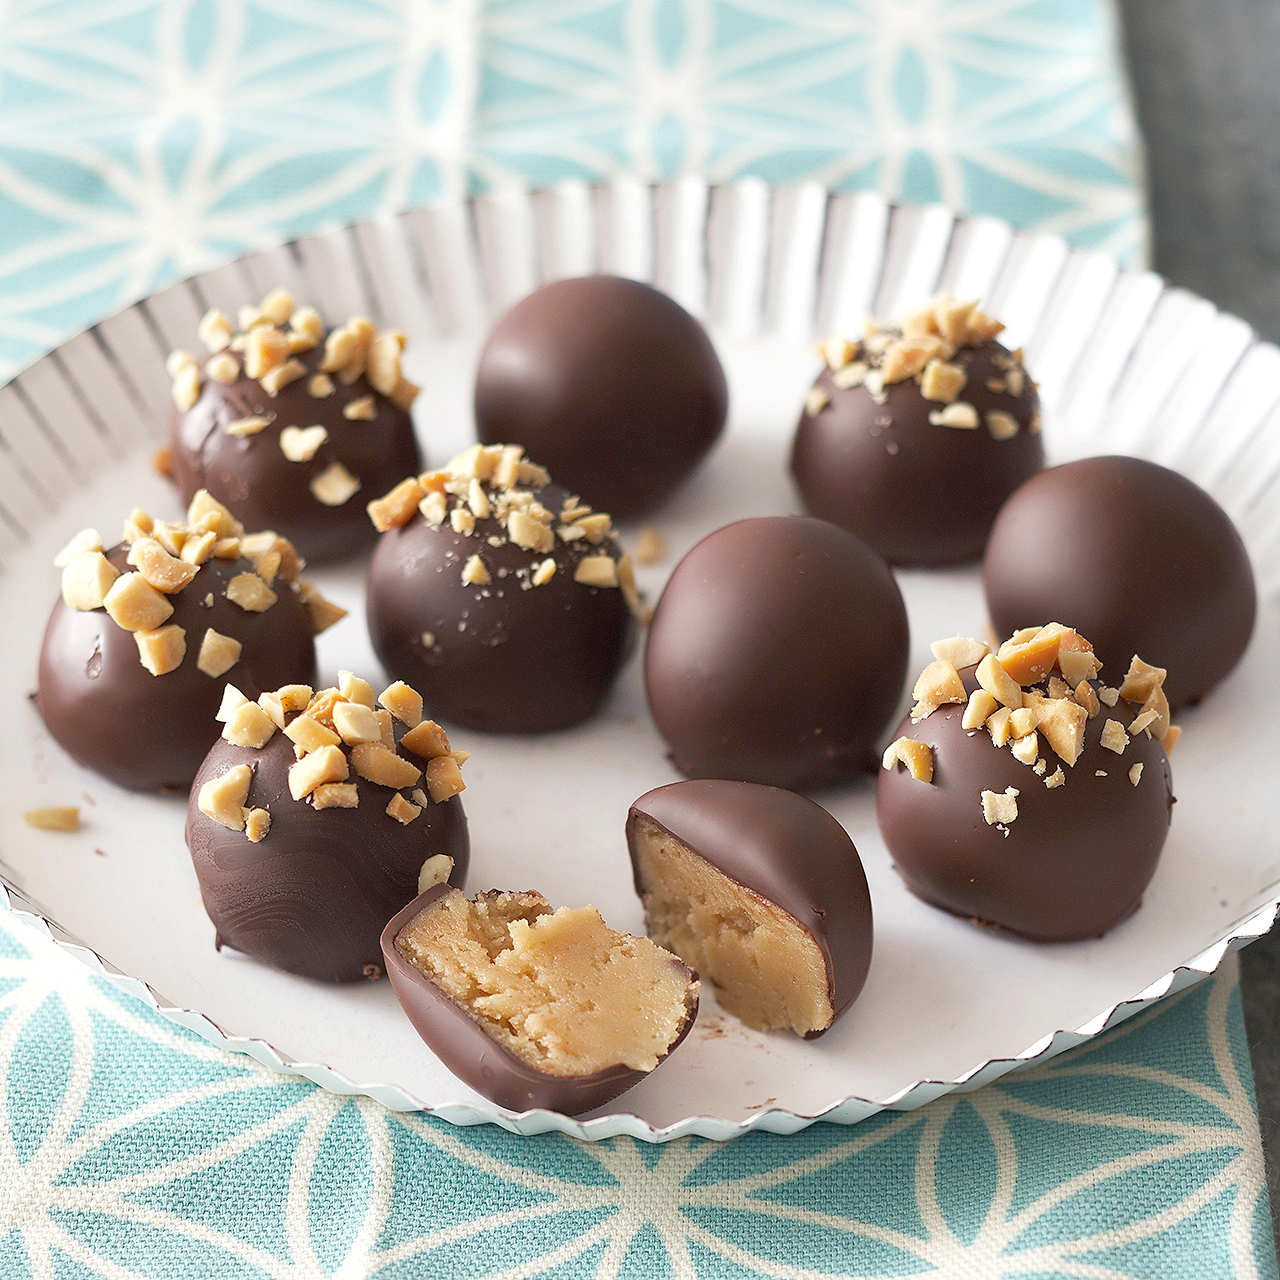 truffles with peanut butter on plate